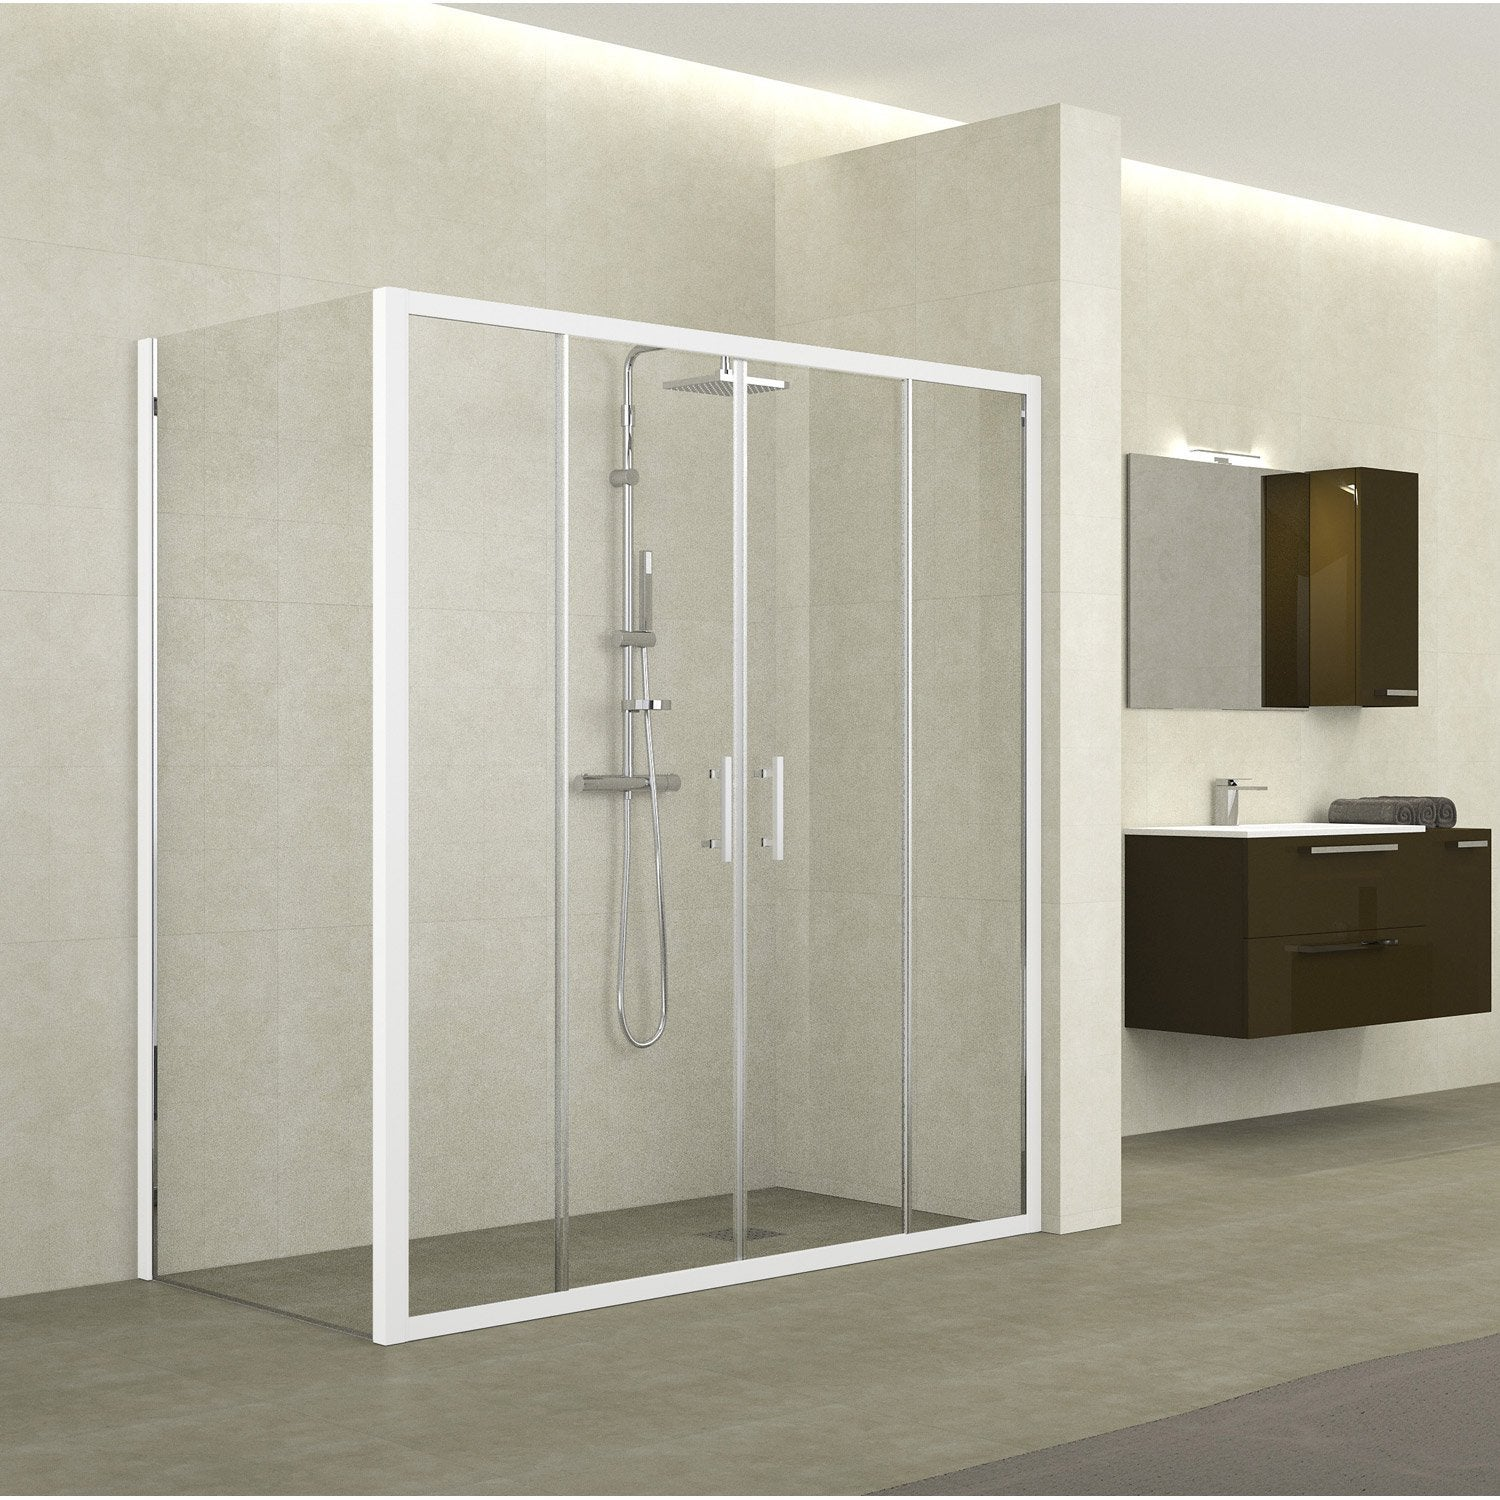 porte de douche coulissante sensea elyt 4onx verre de s curit transparent leroy merlin. Black Bedroom Furniture Sets. Home Design Ideas